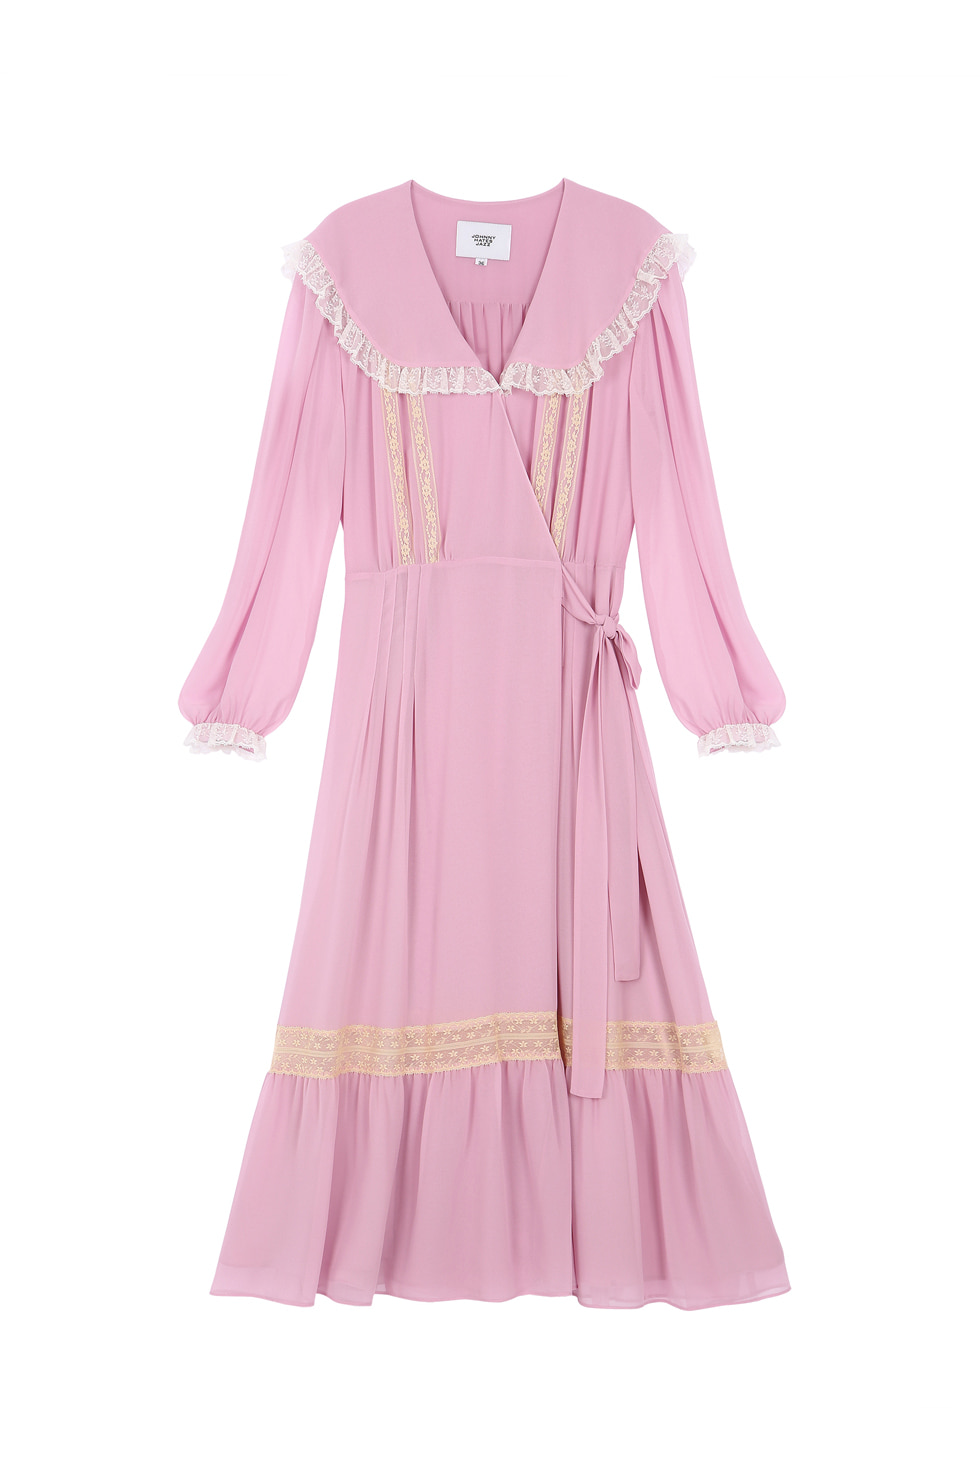 LACE CHIFFON DRESS - PINK